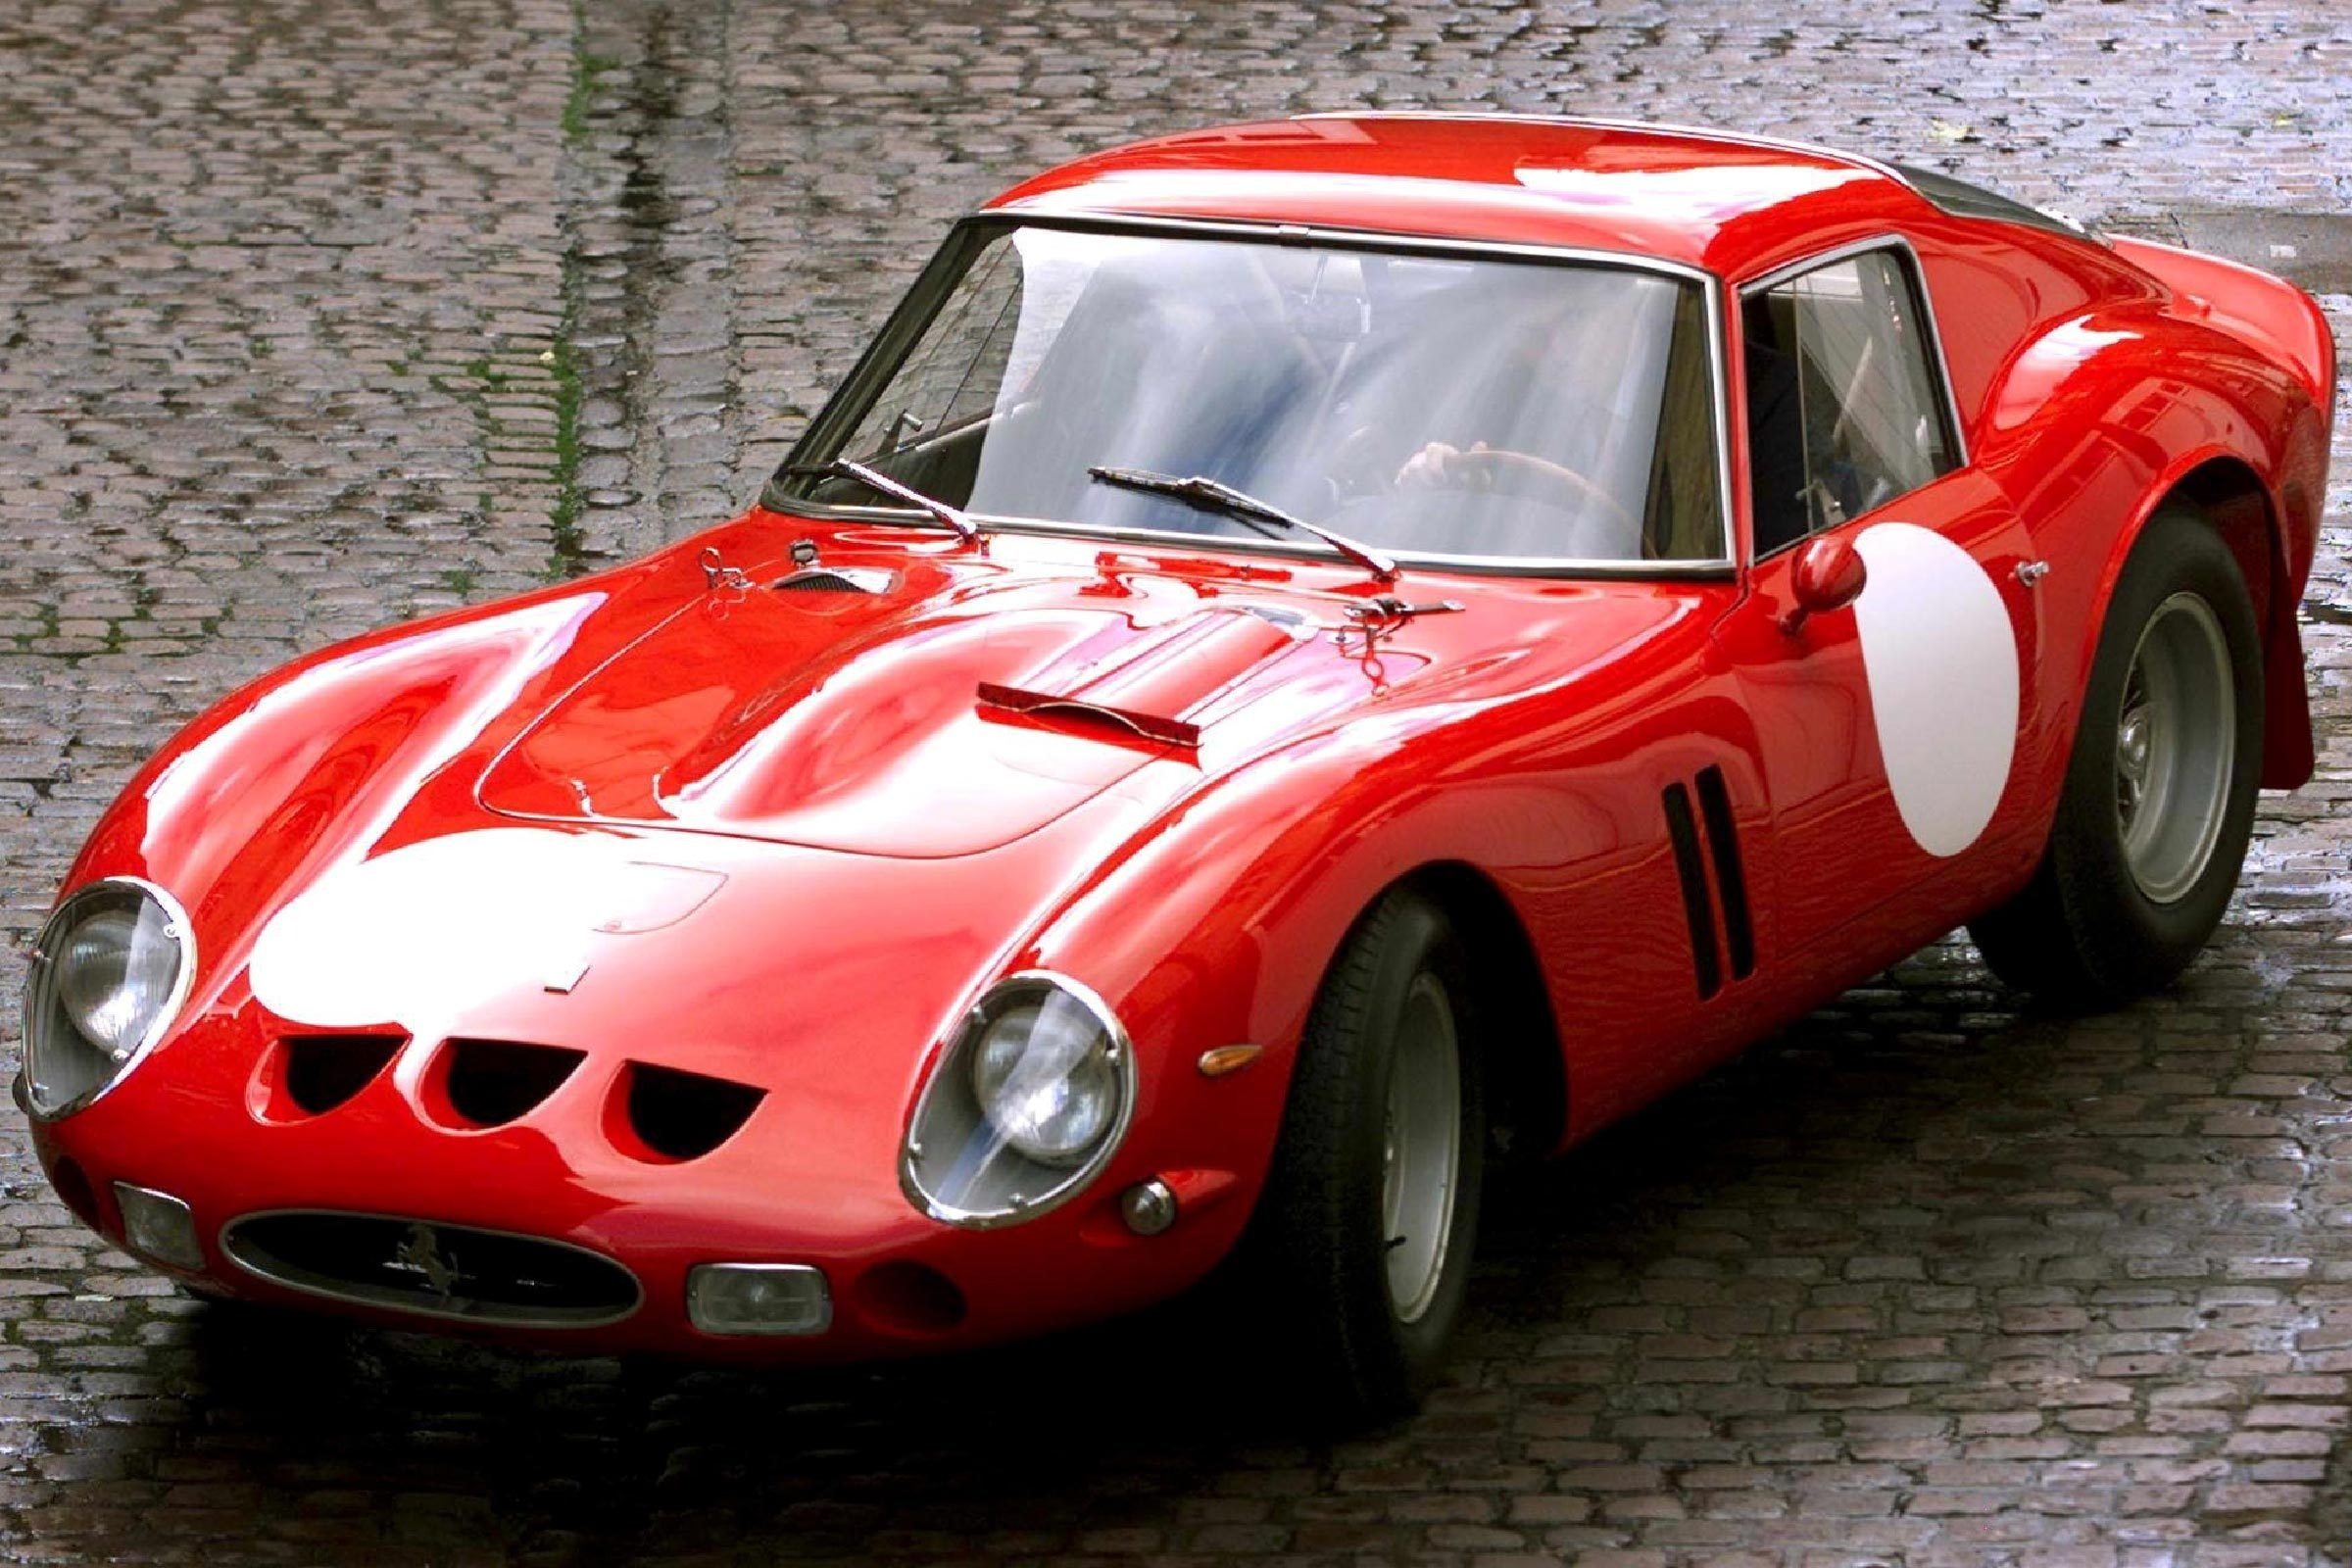 London United Kingdom : a Vintage 1963 Ferrari 250 Gto Which Won the 1963 Le Mans Gt Race Outside Bonham and Brooks Auction House in London 30 October 2000 One of Only 39 250 Gto Variants the 3-litre Ferrari is to Be Auctioned Next Month and is Expected to Threaten the World Record by Selling For Approximately $10 Million in the Historic Ferrari Motor Car and Automobilia Show in Gstaad Switzerland on 19 December